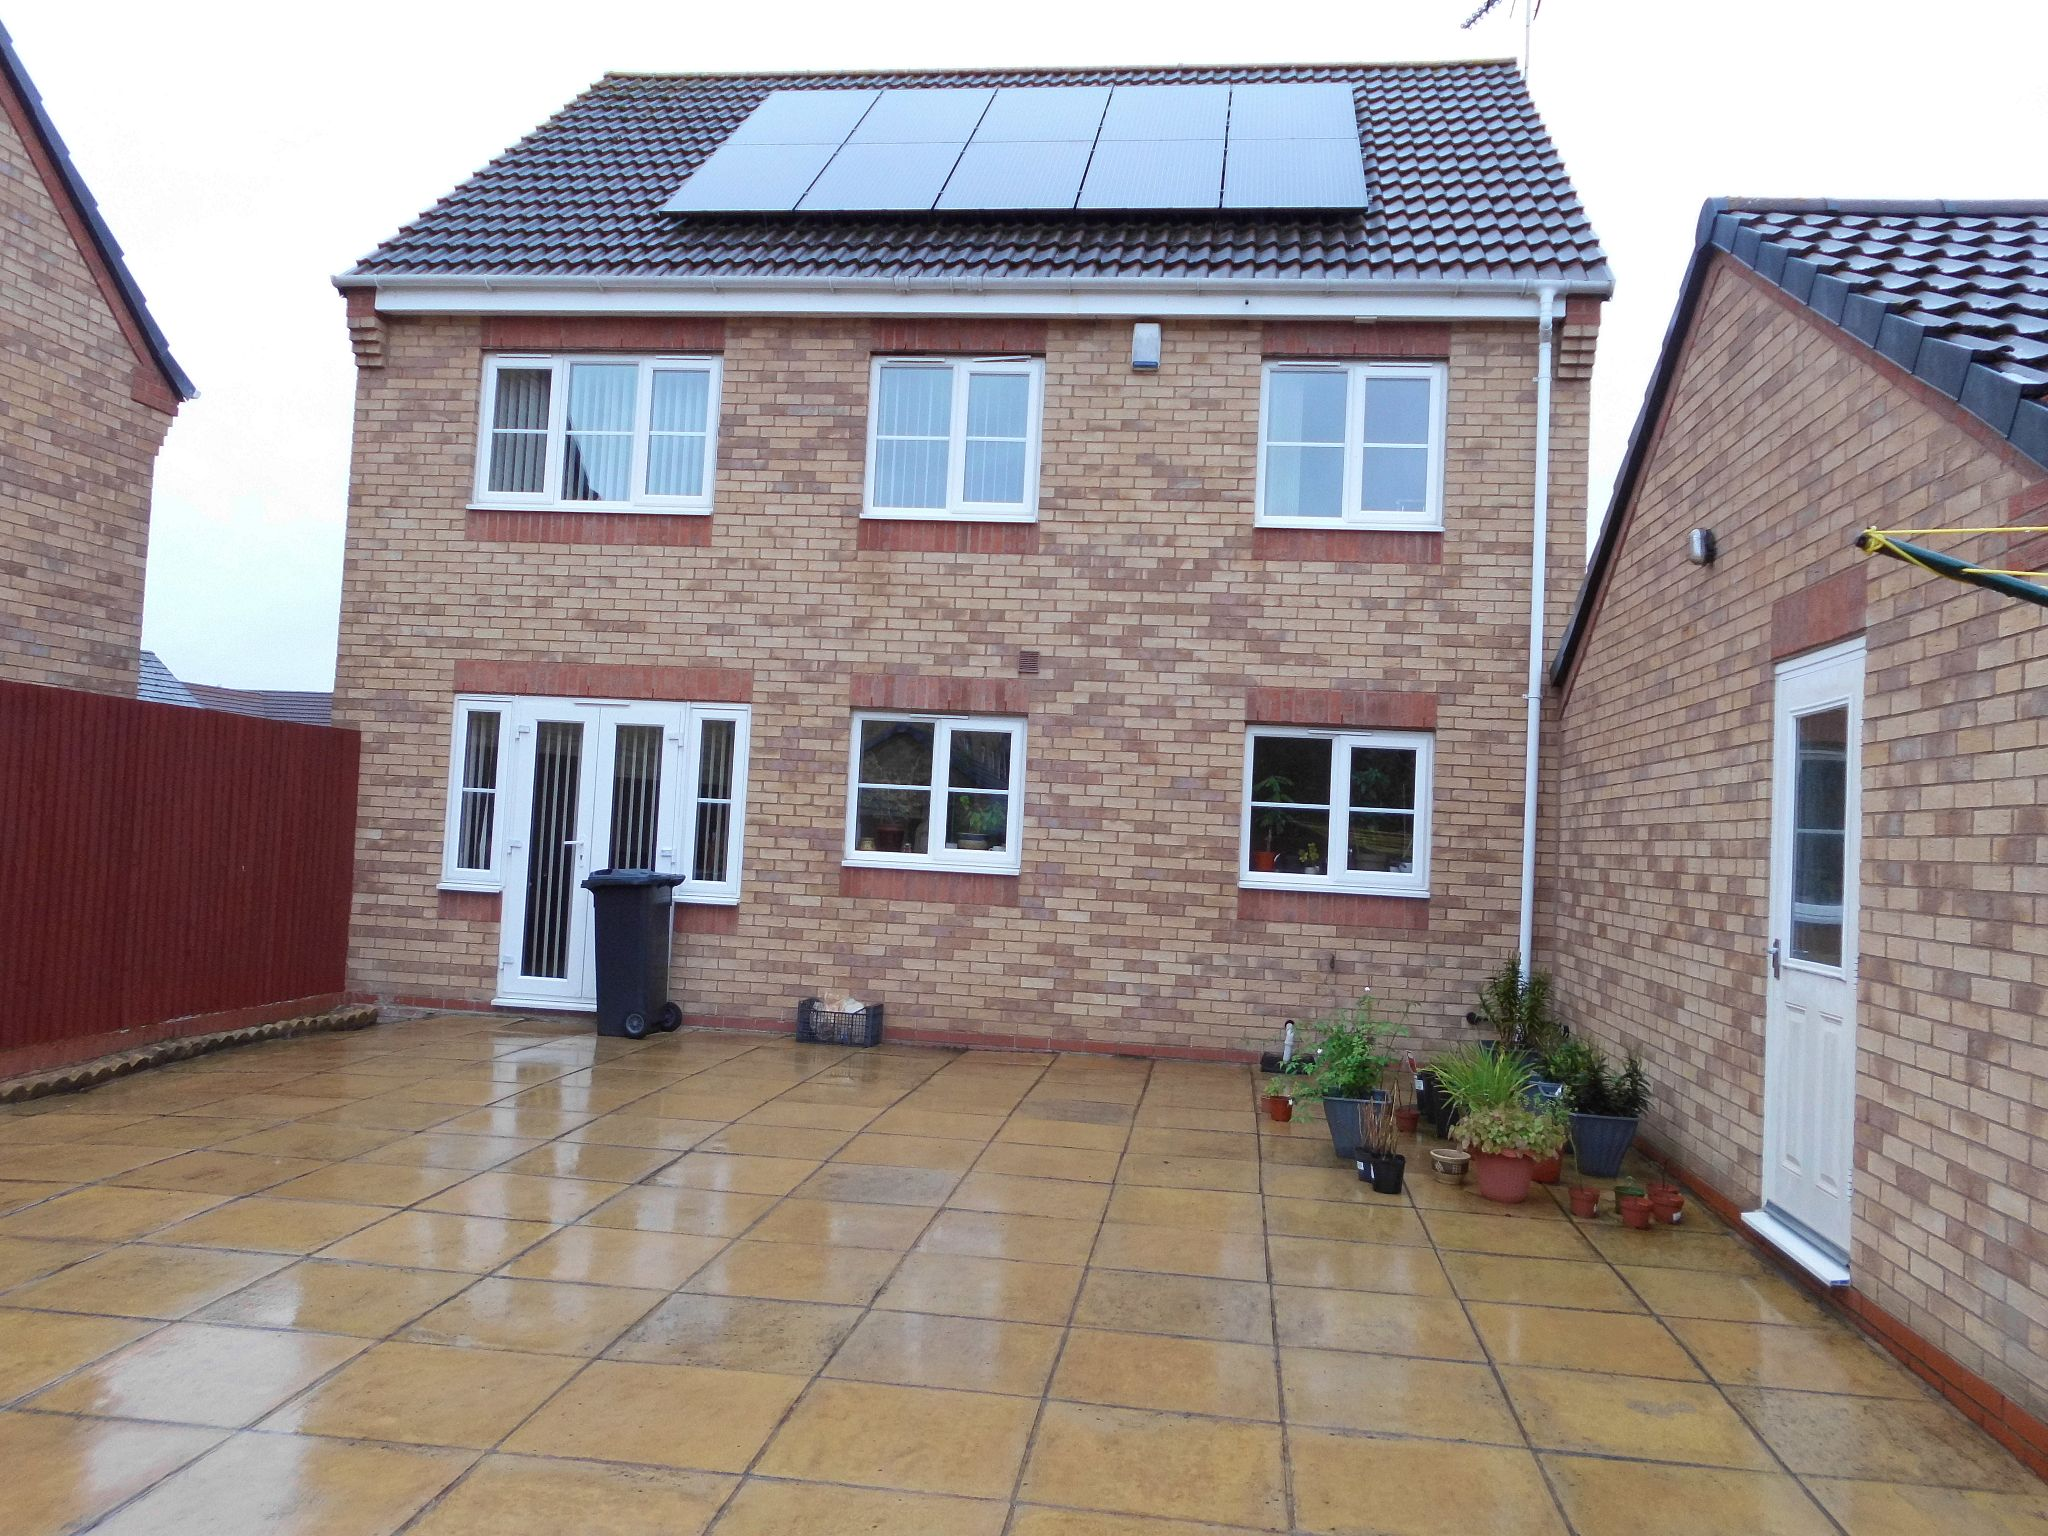 4 bedroom detached house SSTC in Leicester - Photograph 15.